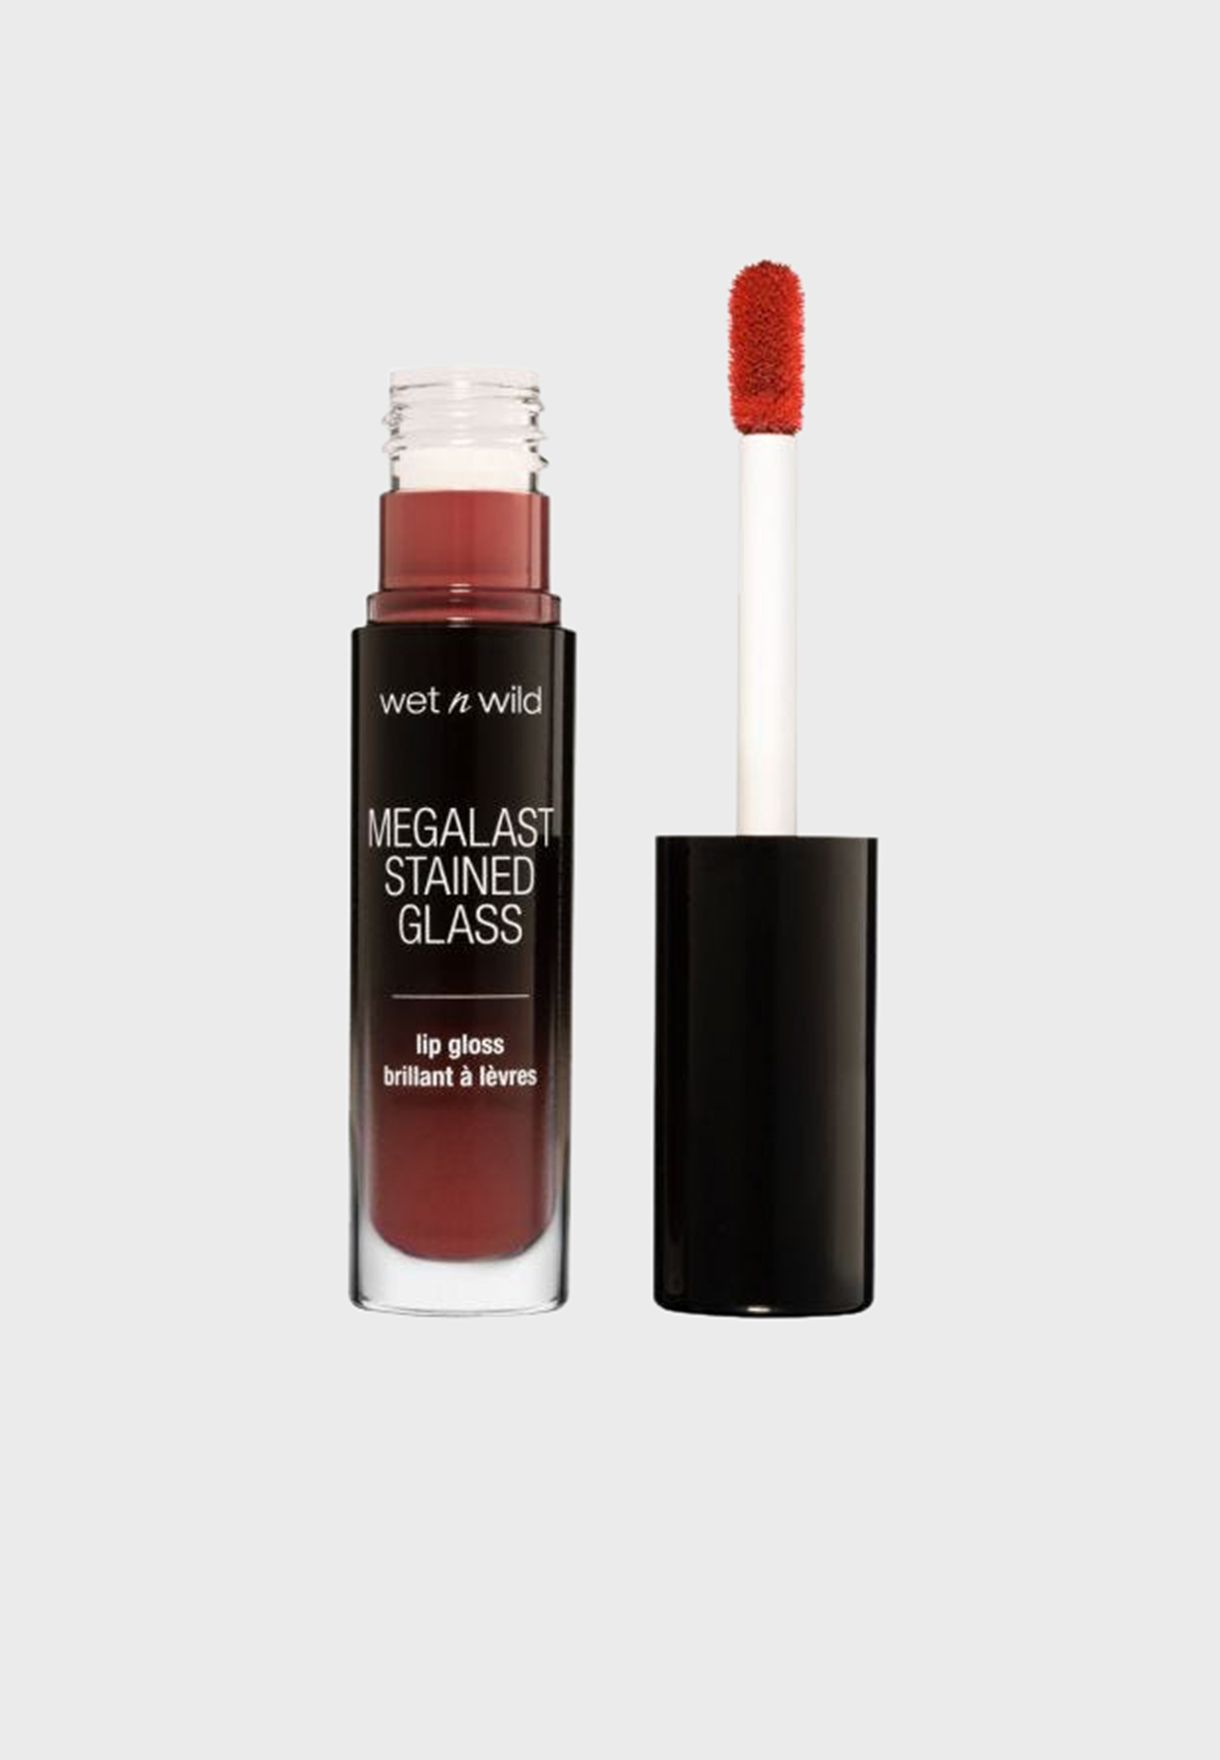 Megalast Stained Glass Lip Gloss - Handle With Care